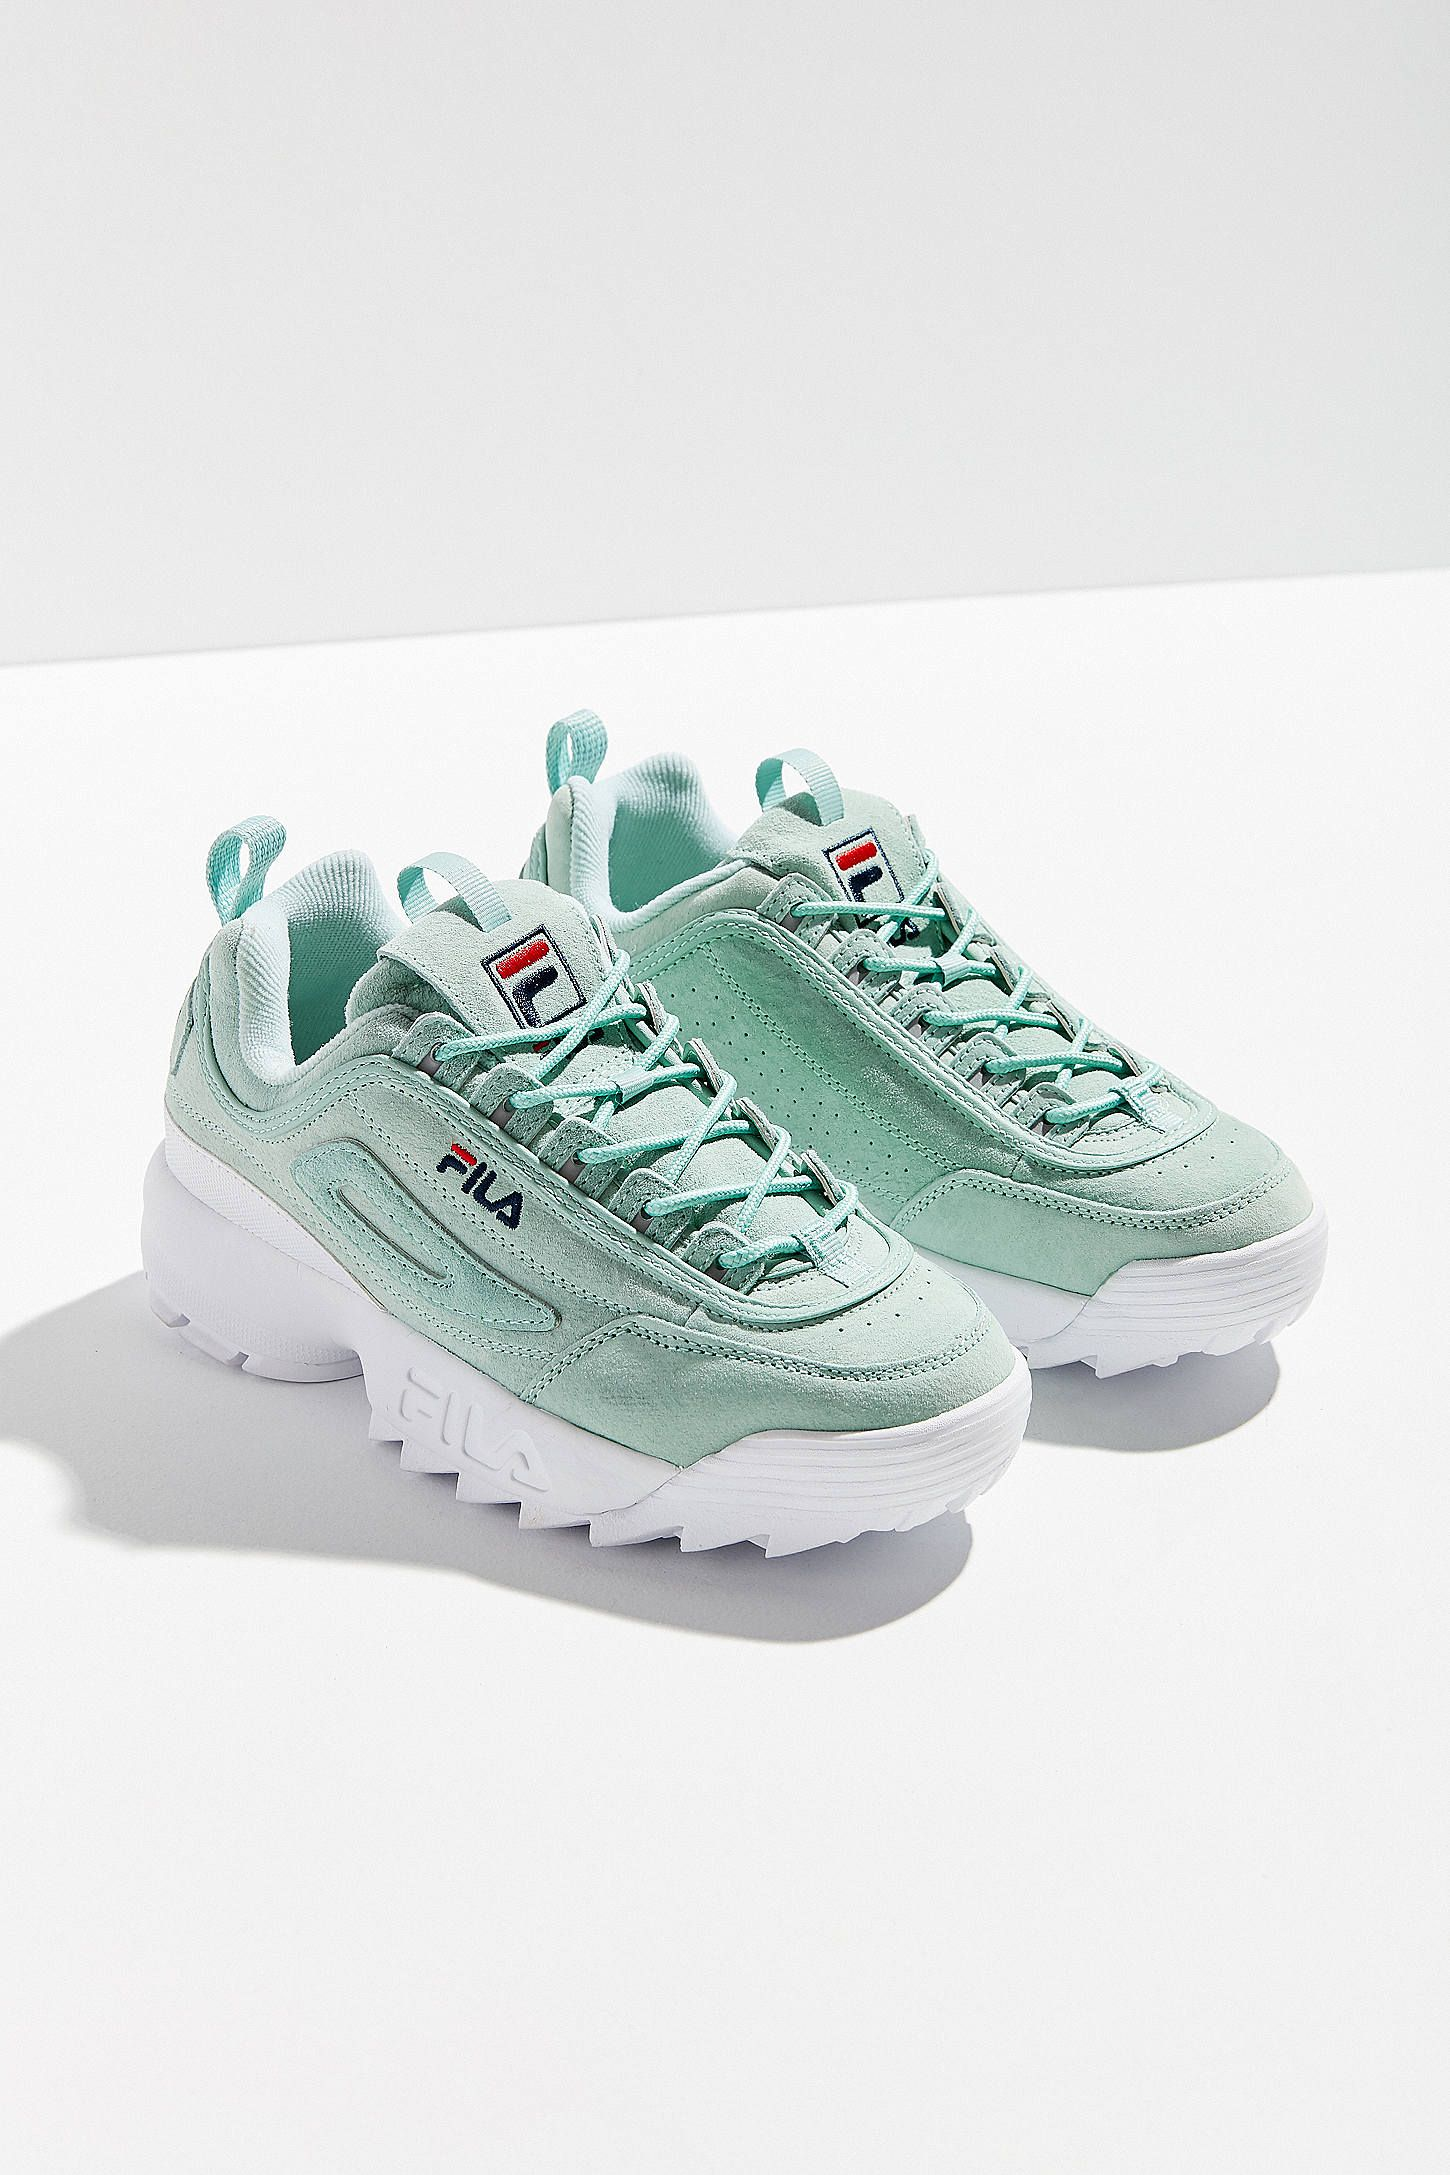 FILA Disruptor II Pastel Sneaker | accessories in 2019 ...